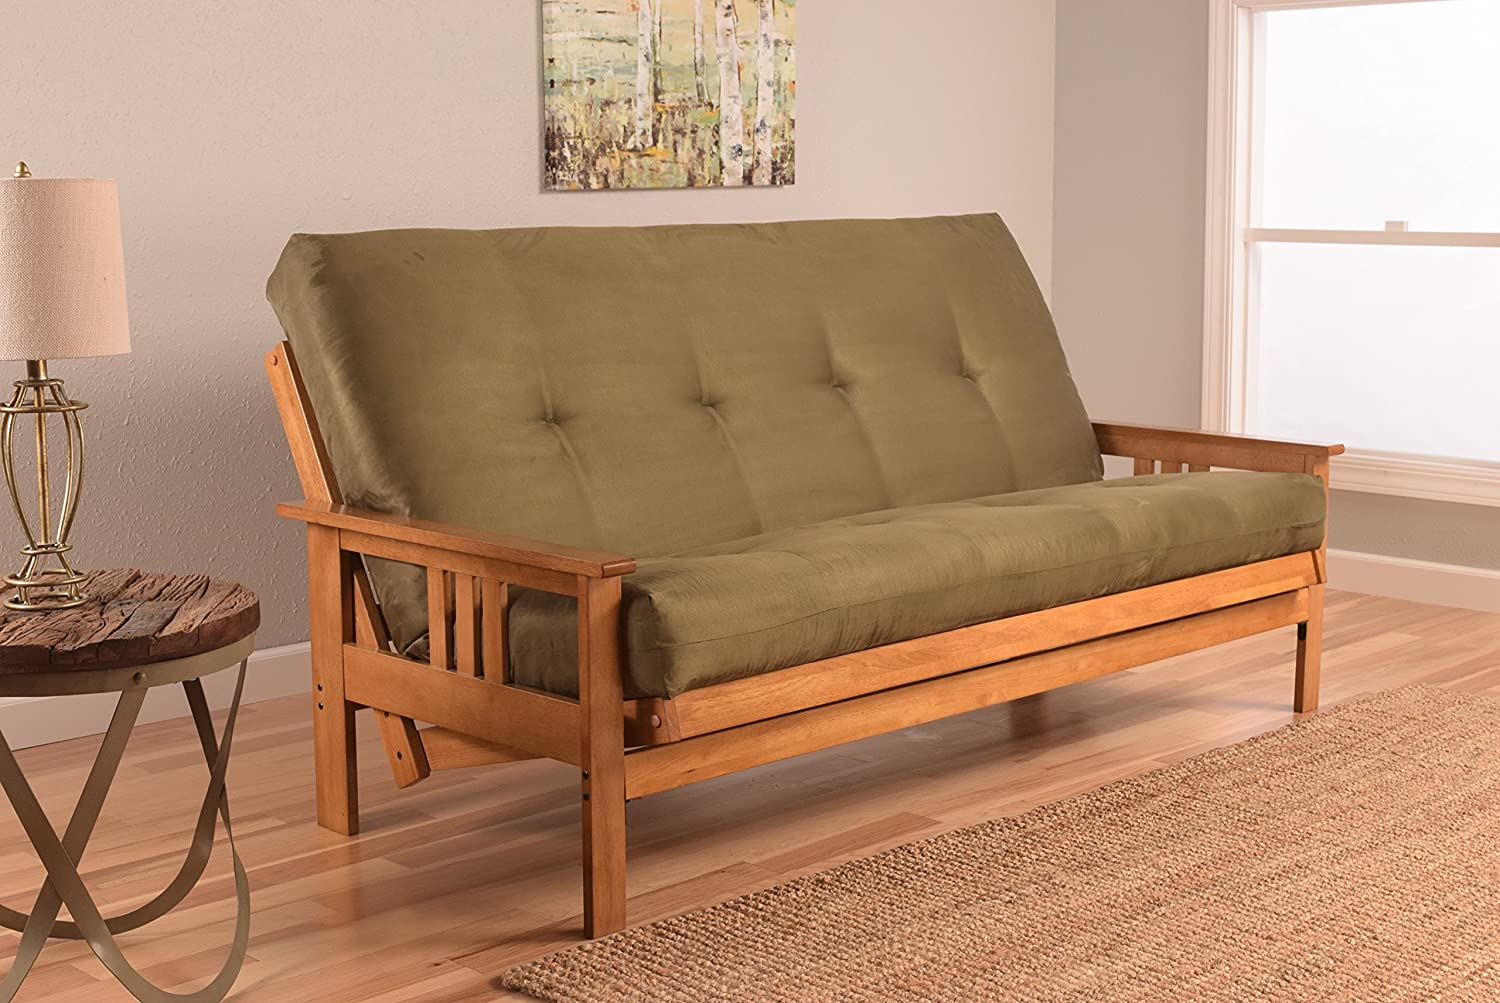 check out 8d587 f5c1d Michael Anthony Furniture Monterey Full Size Futon Sofa Bed, Butternut Wood  Frame, Suede Innerspring Mattress, Chocolate